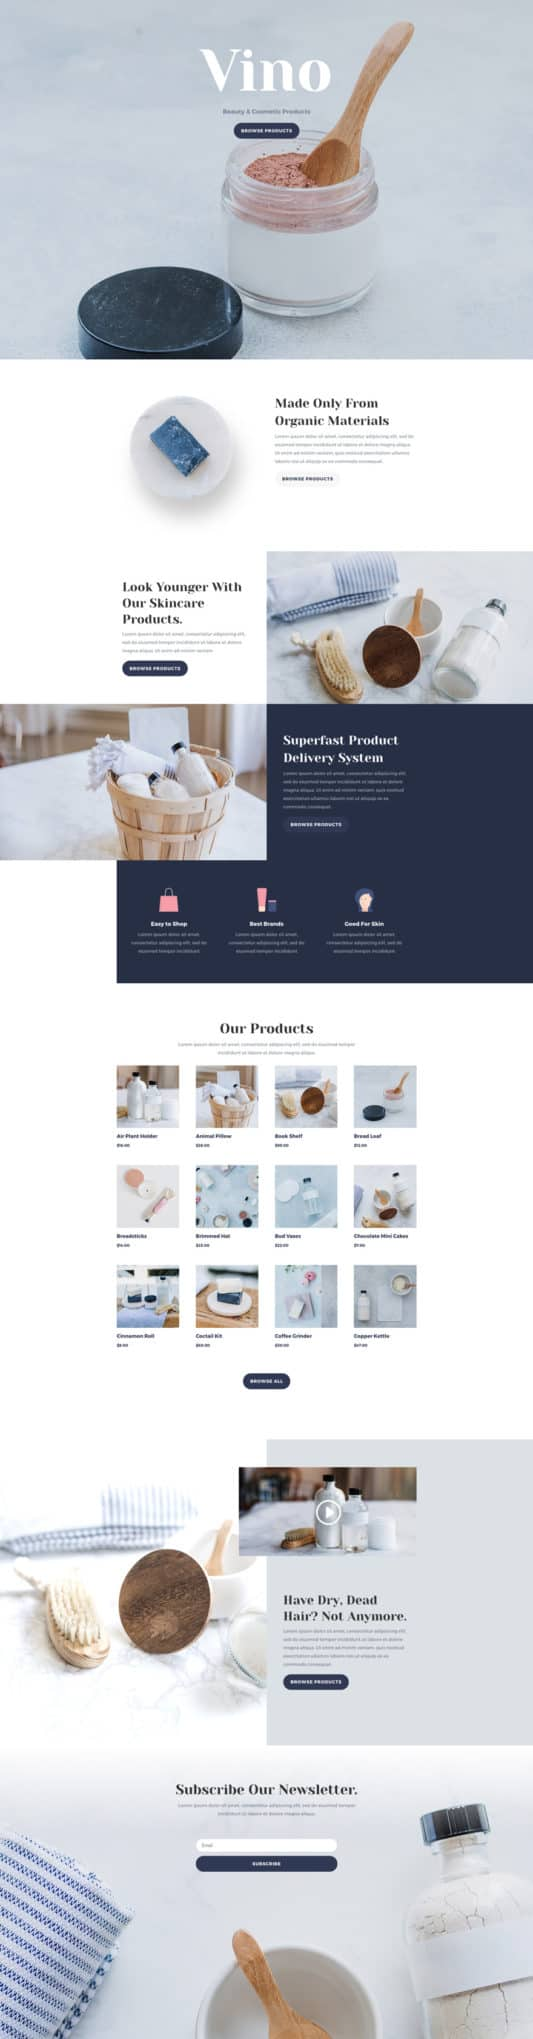 The Cosmetics Shop Page Style: Homepage Design 1